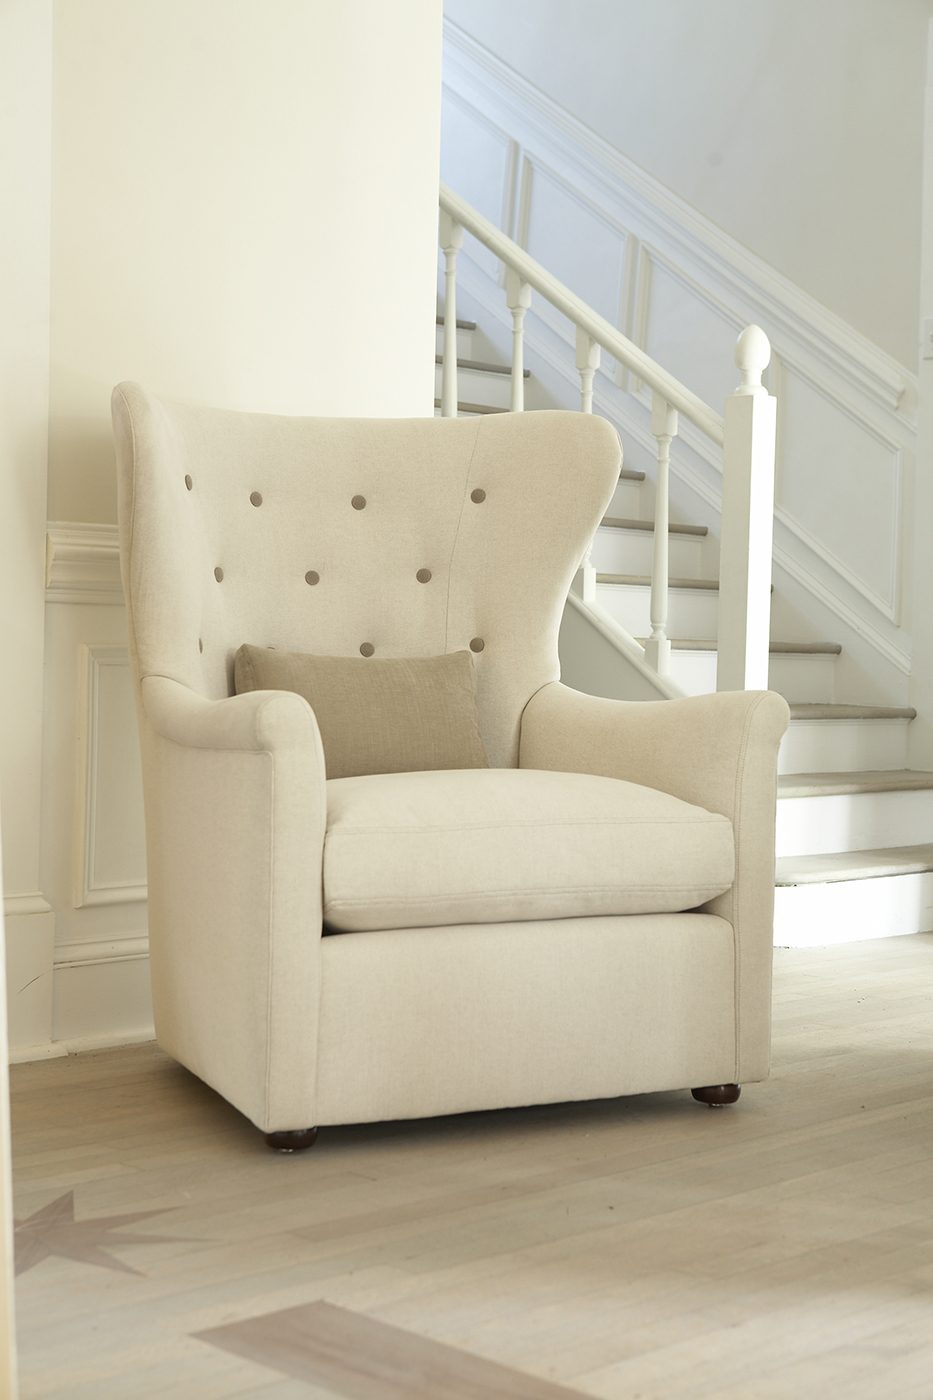 "My favorite chair at the moment: the Faye Wing chair by Verellen. I love the casual yet sophisticated look of the brand. ""Belgian Conception. American Perfection."" We are really excited to be the first and only design company to offer Verellen in the Sacramento area."